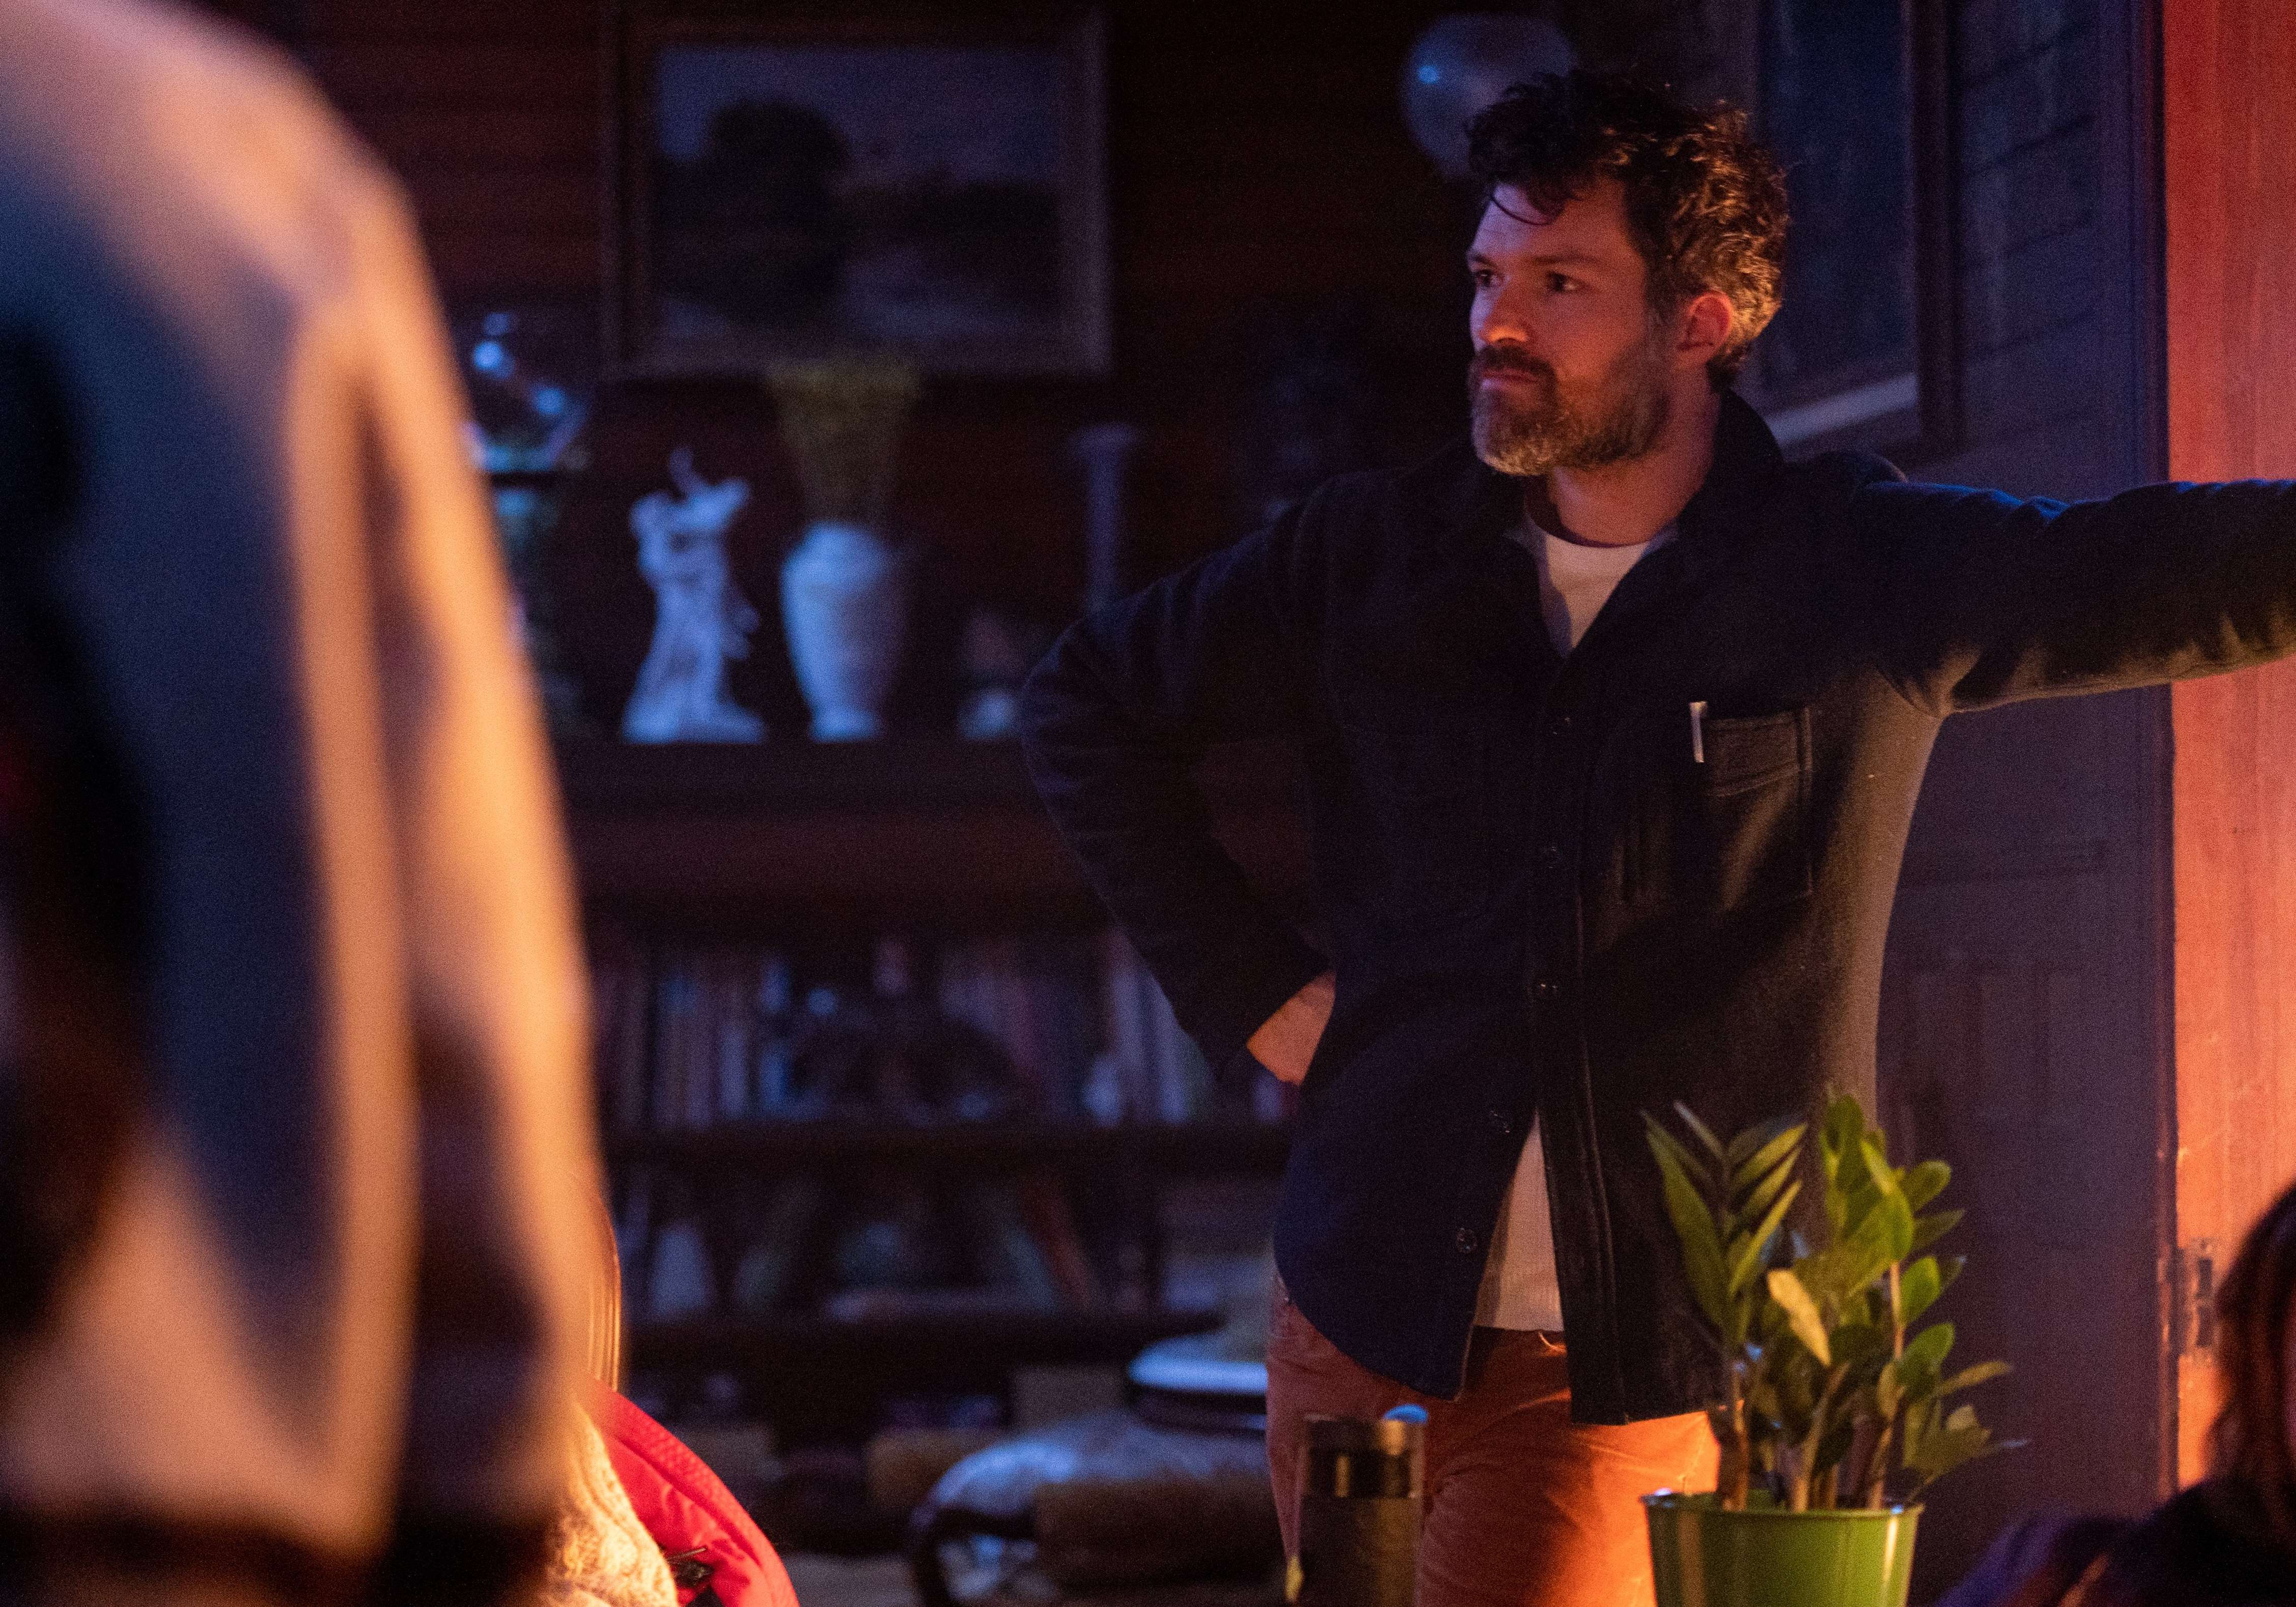 'Werewolves Within' tips its hat to 'Monster Squad' and Mike Nichols: 'There is a monster within us all'